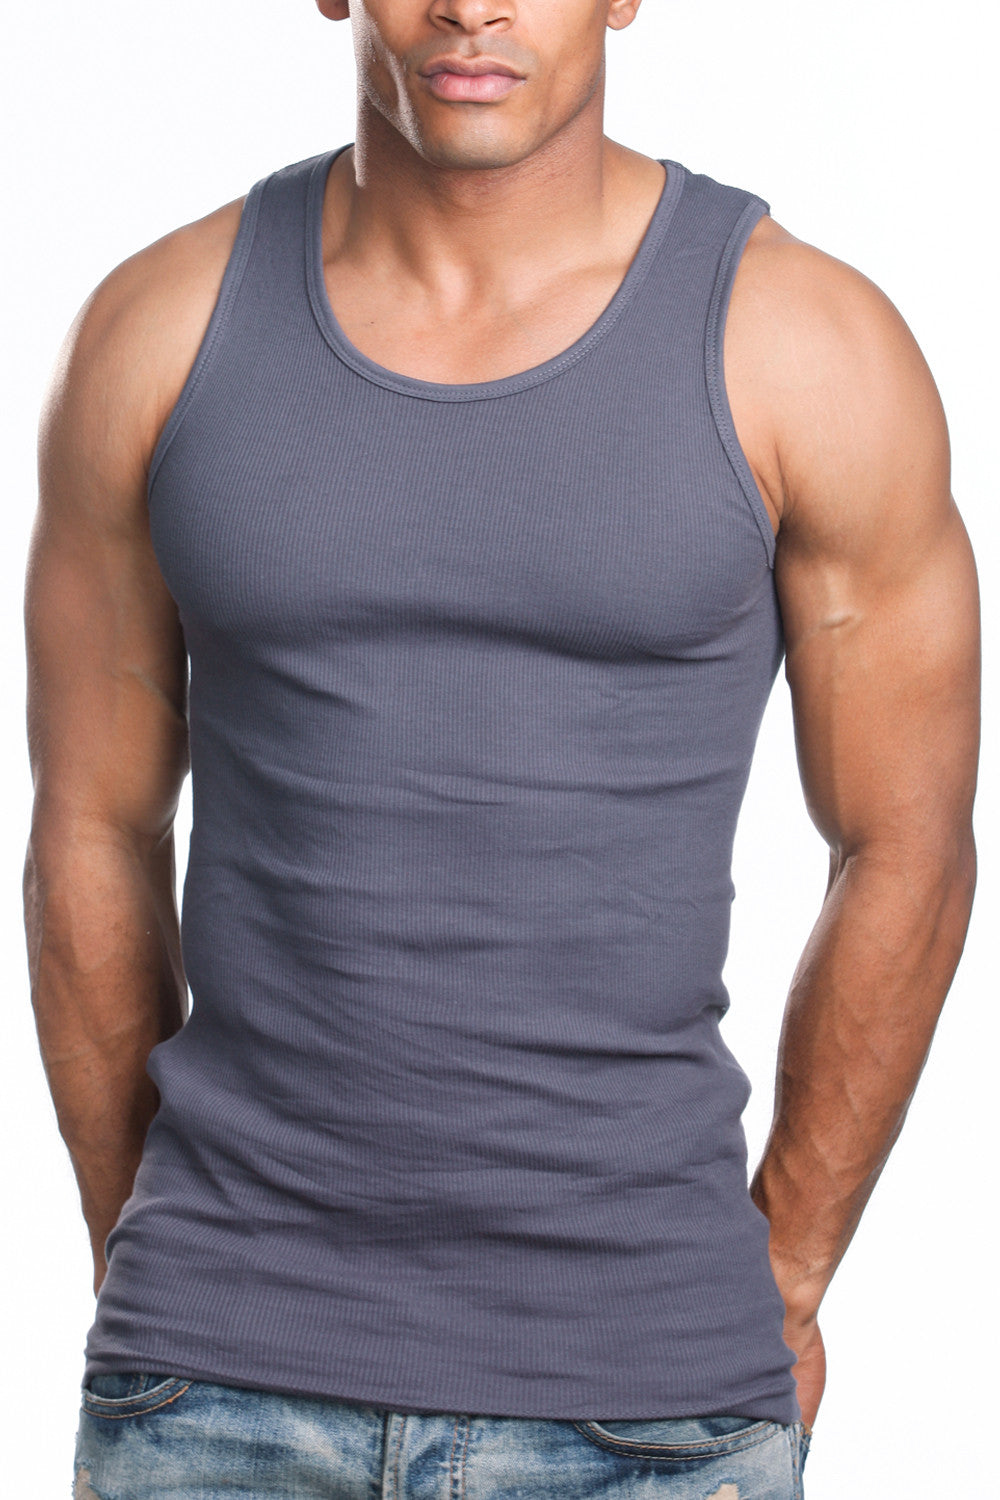 Itzu Ribbed Vest Slim Fit Mens Athletic Muscle Gym Rib Tank Top 100/% Cotton 3//6 Pack Black//White